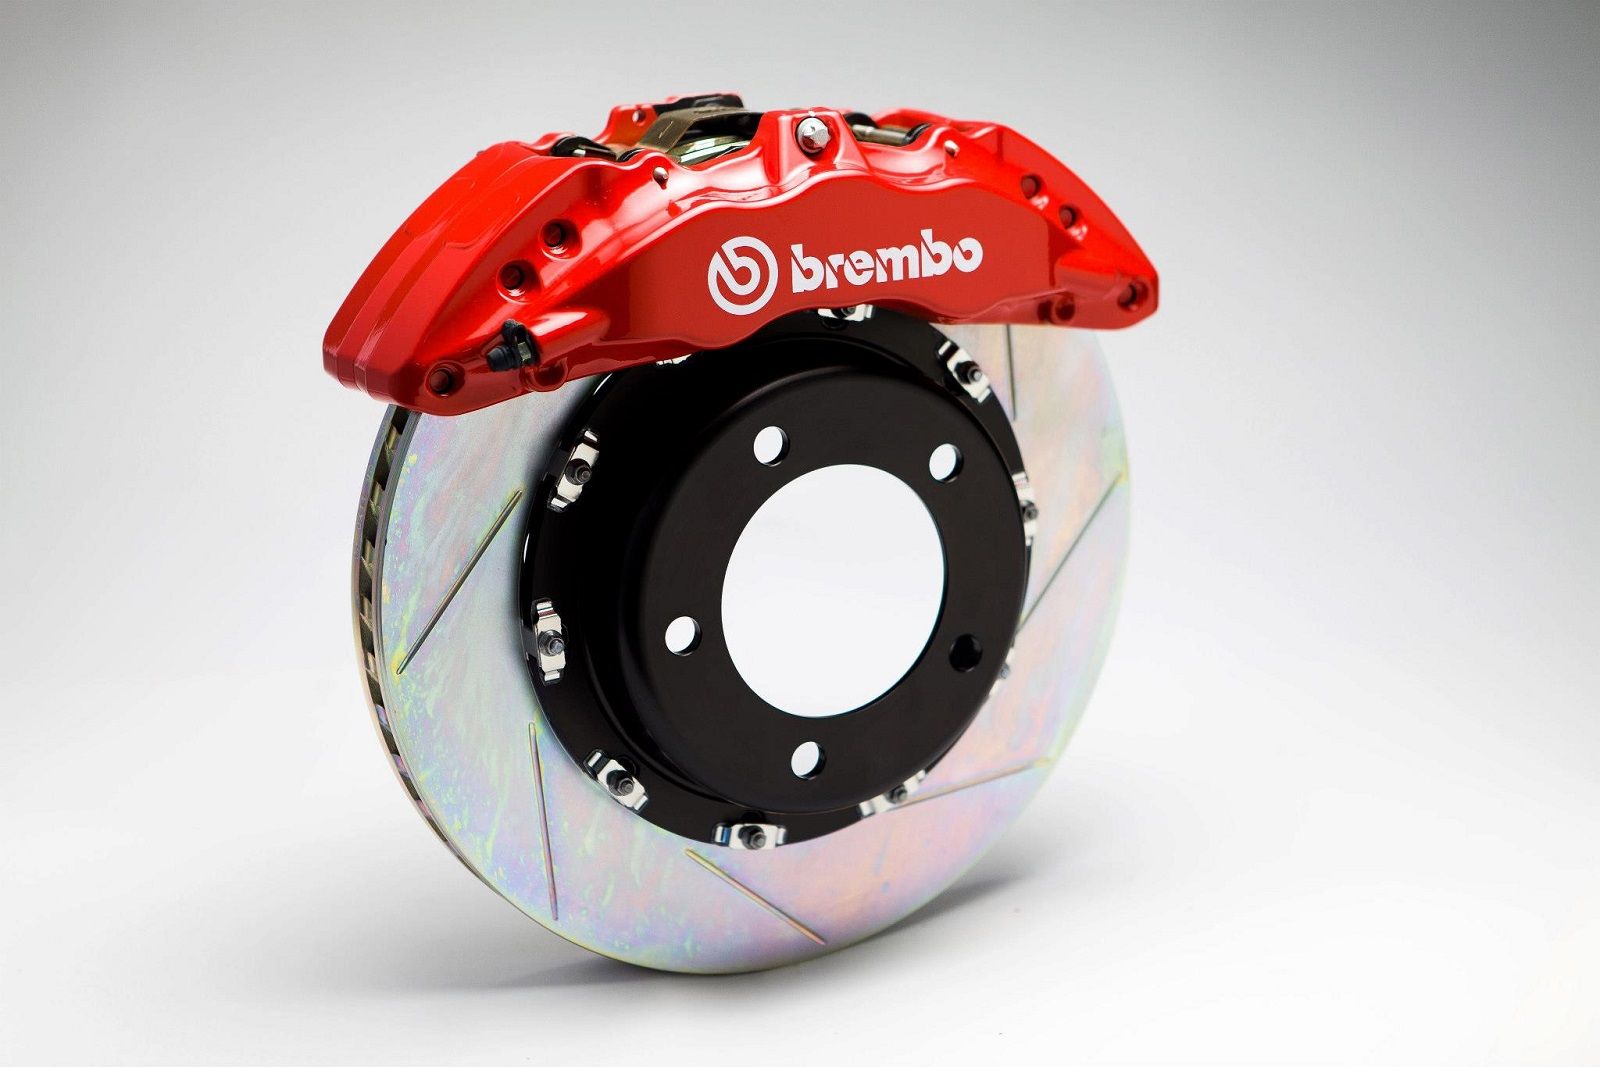 Brembo Brake Pads >> Column: Why are Brembo Brakes so Popular? - GTspirit